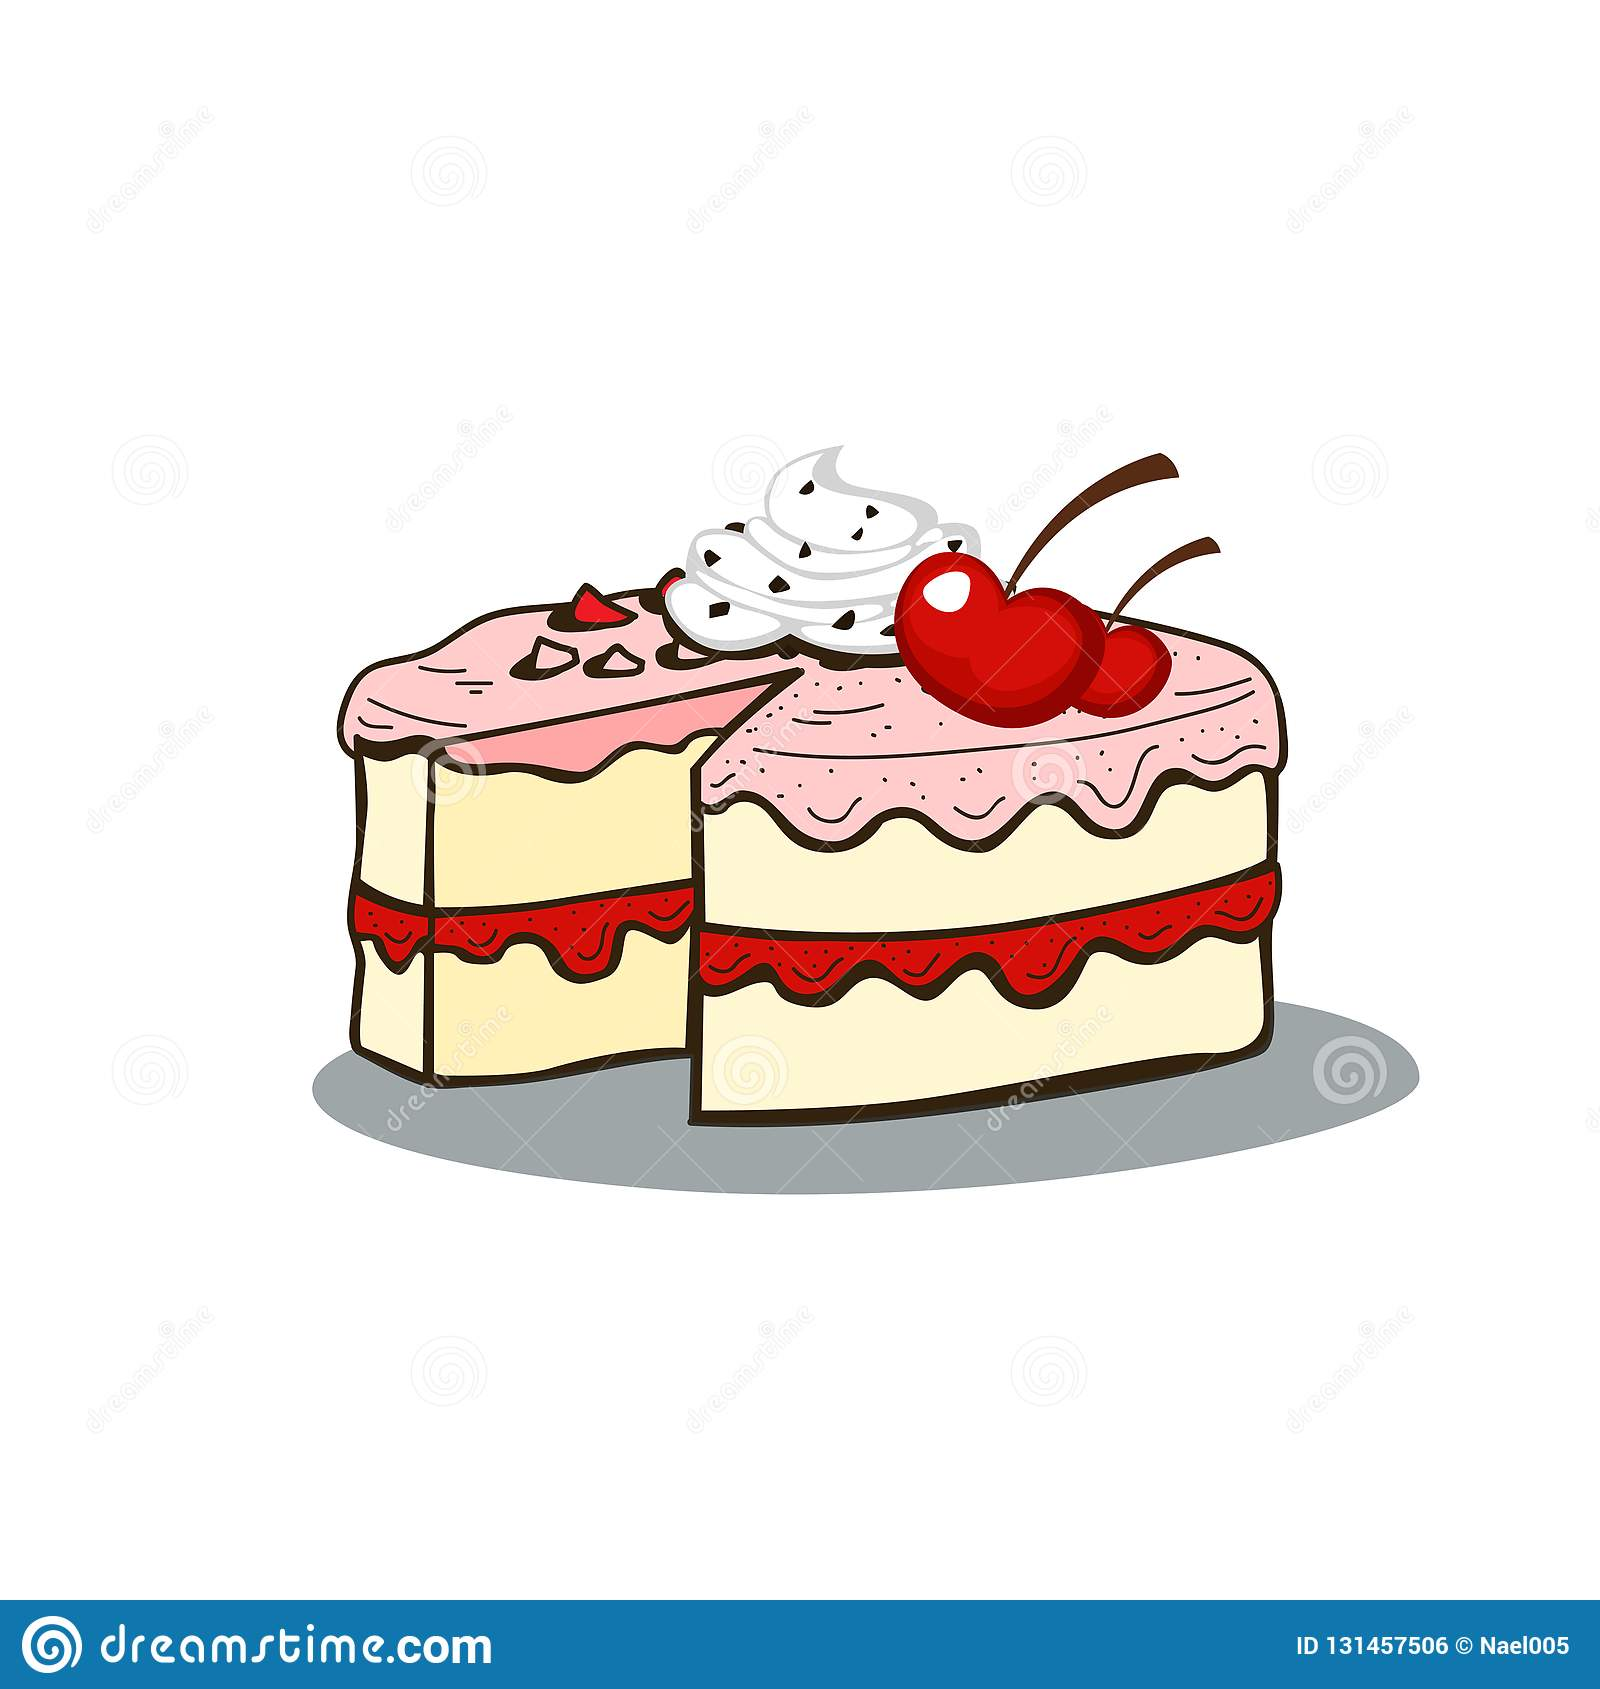 Tremendous Birthday Cake Vector Design Stock Illustration Illustration Of Funny Birthday Cards Online Alyptdamsfinfo